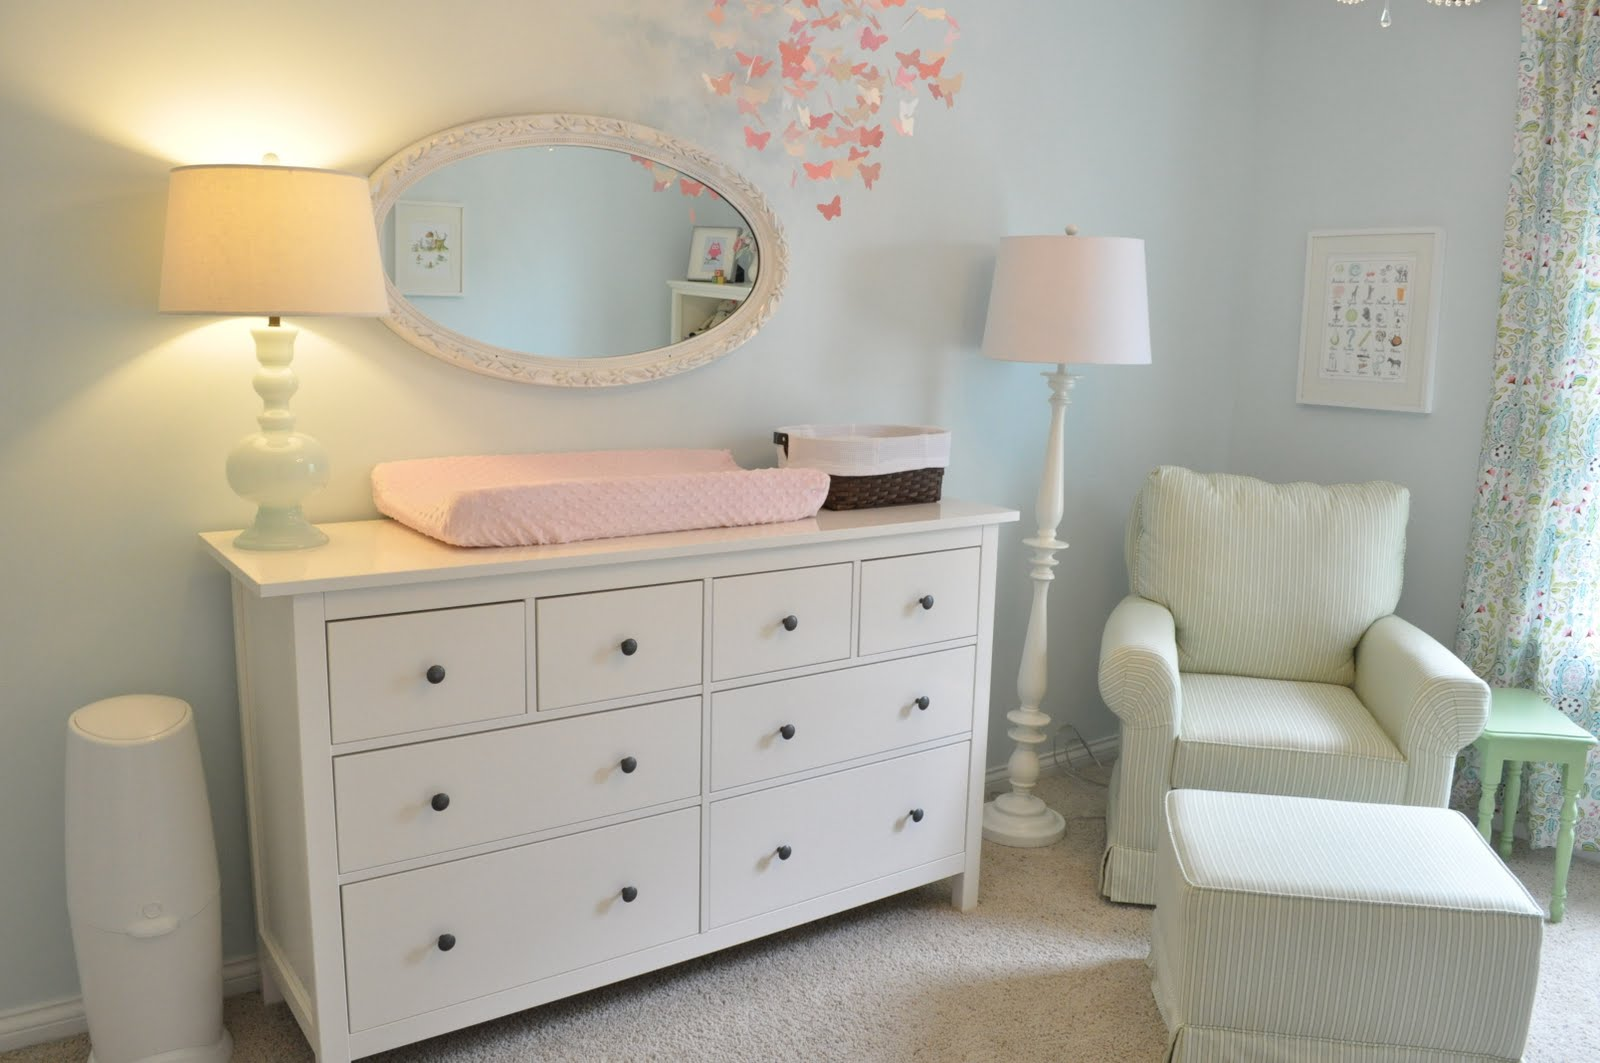 Ikea Dresser As Changing Table ~ Anyone have pics of Ikea Hemnes dresser in nursery? — The Bump